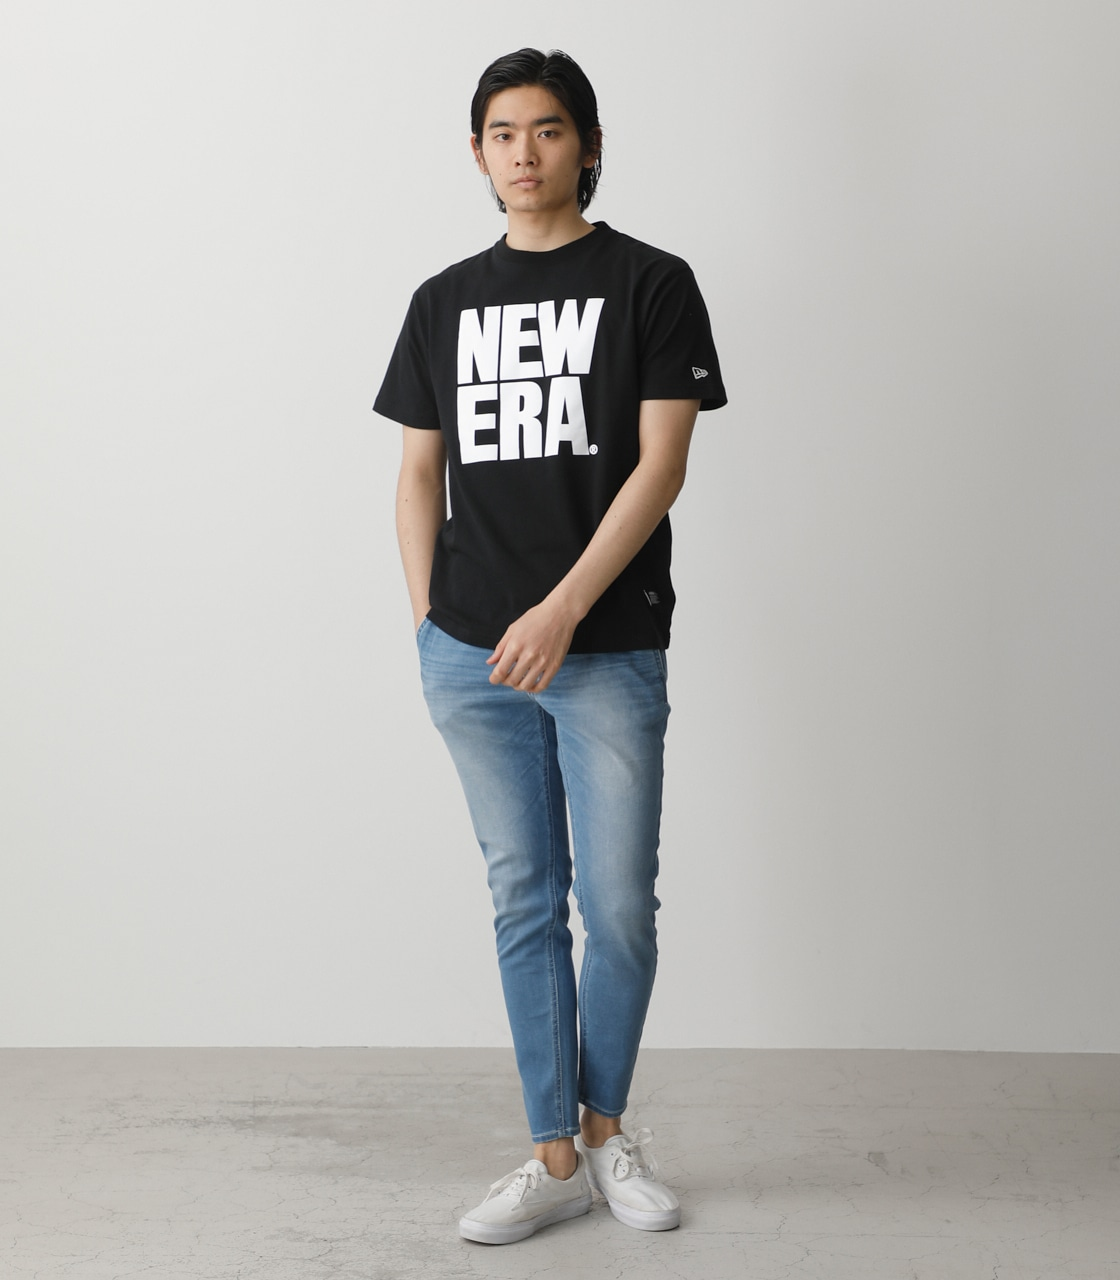 NEW ERA×AZUL T-SHIRTS/NEW ERA×AZULTシャツ 詳細画像 BLK 4